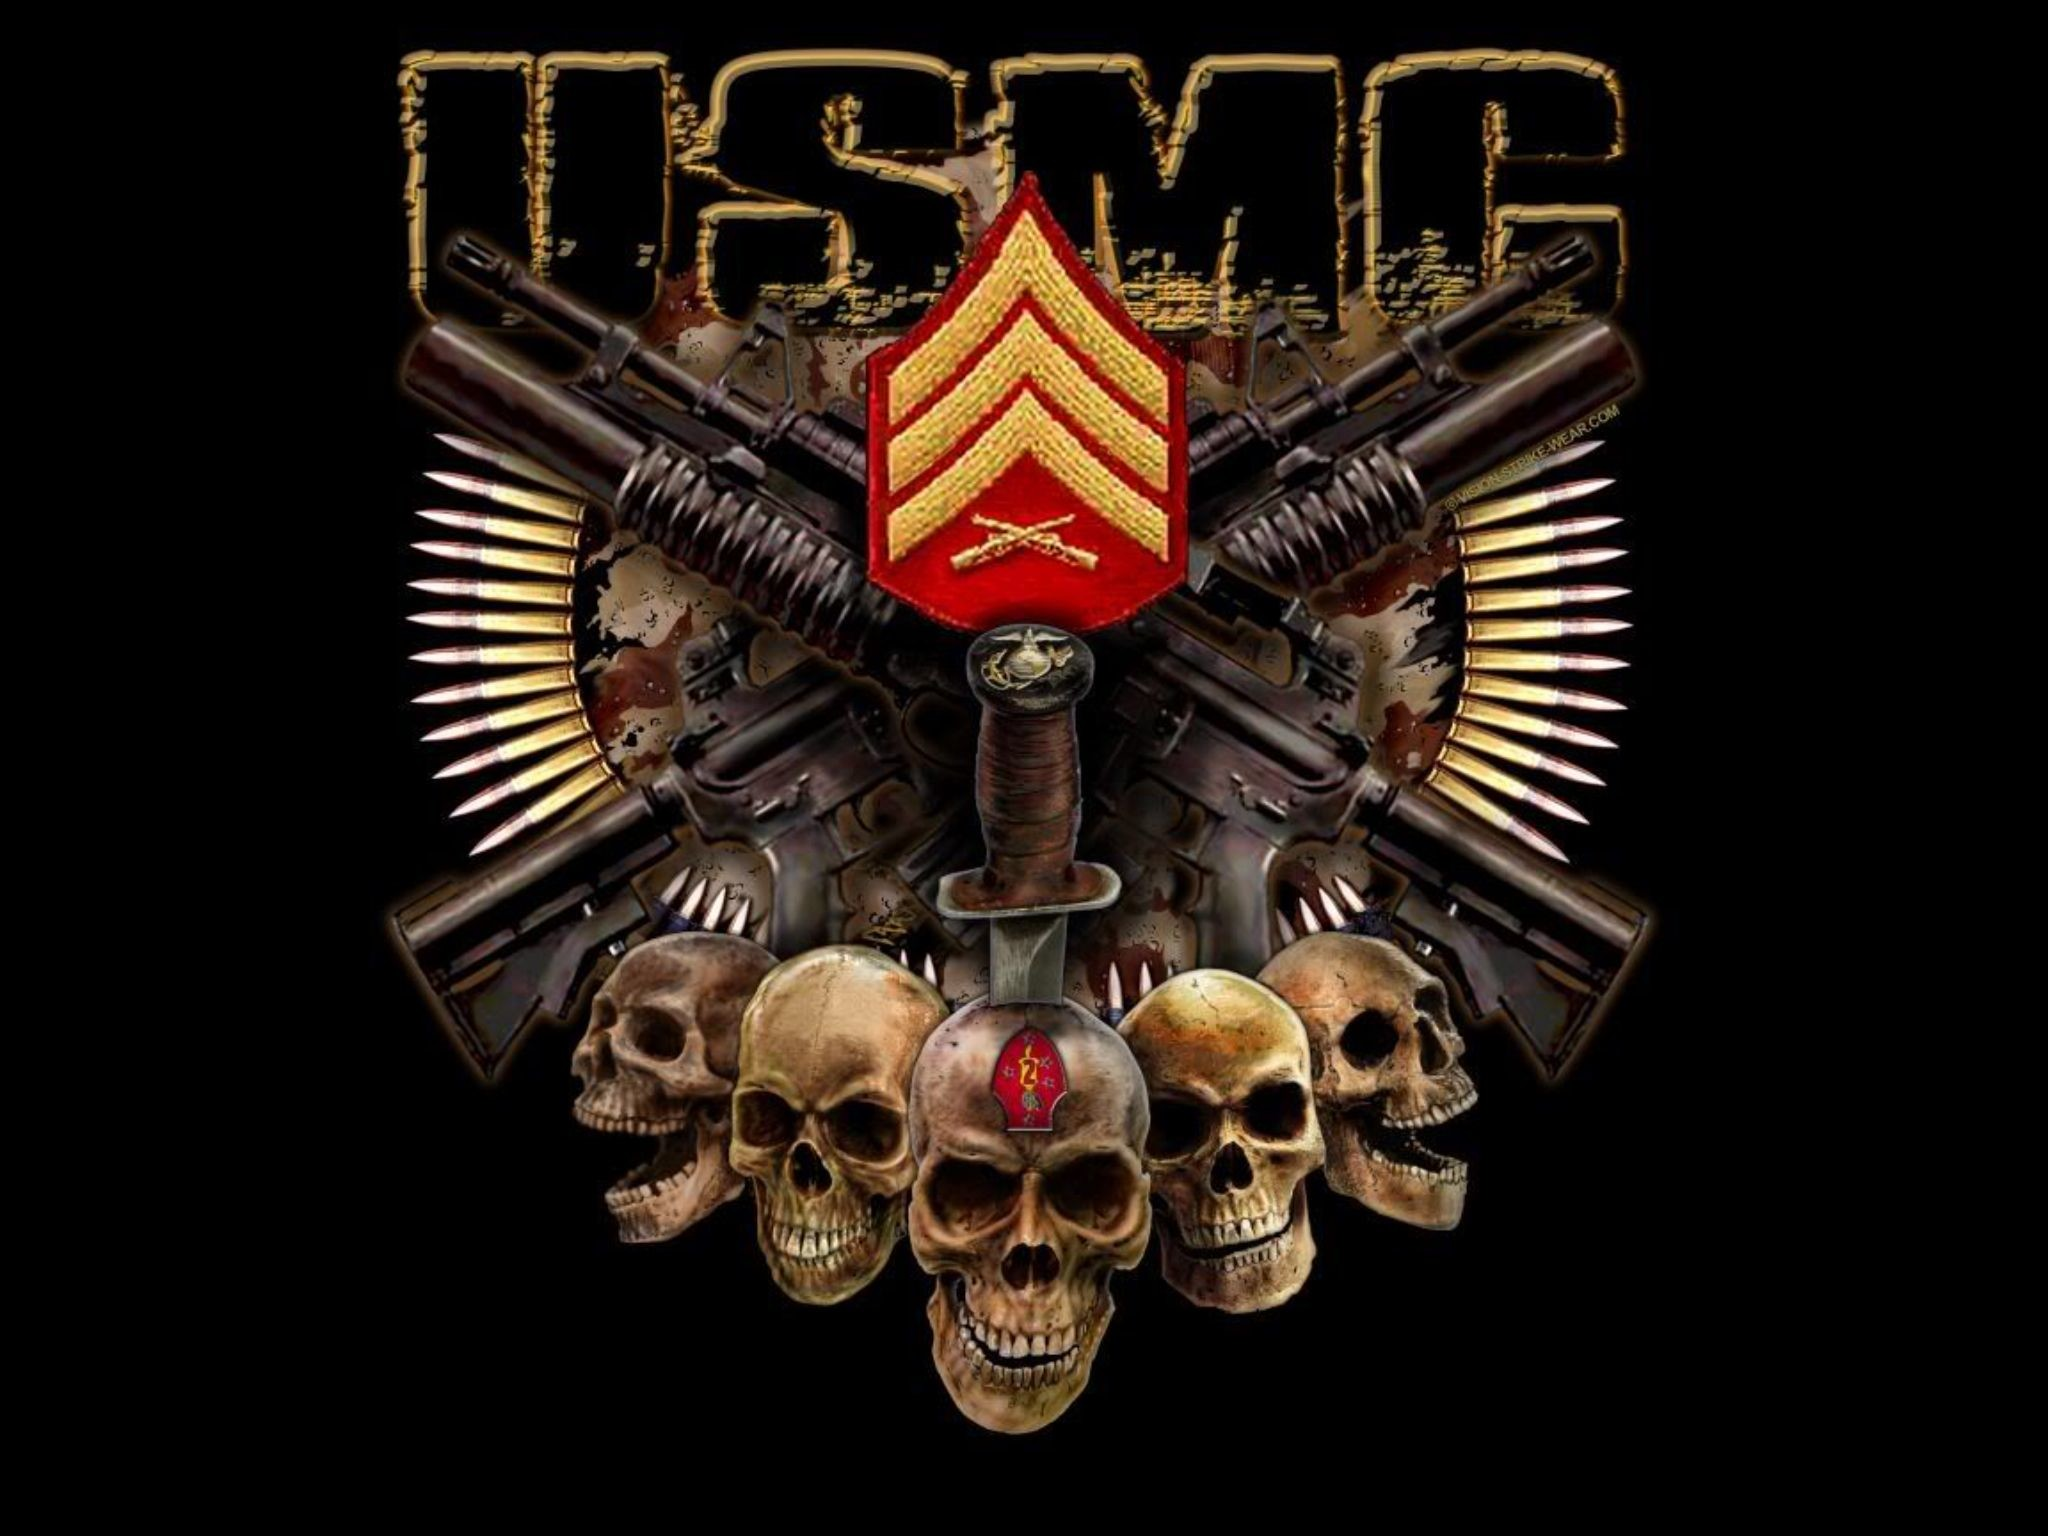 2048x1536 Awesome USMC wallpaper.